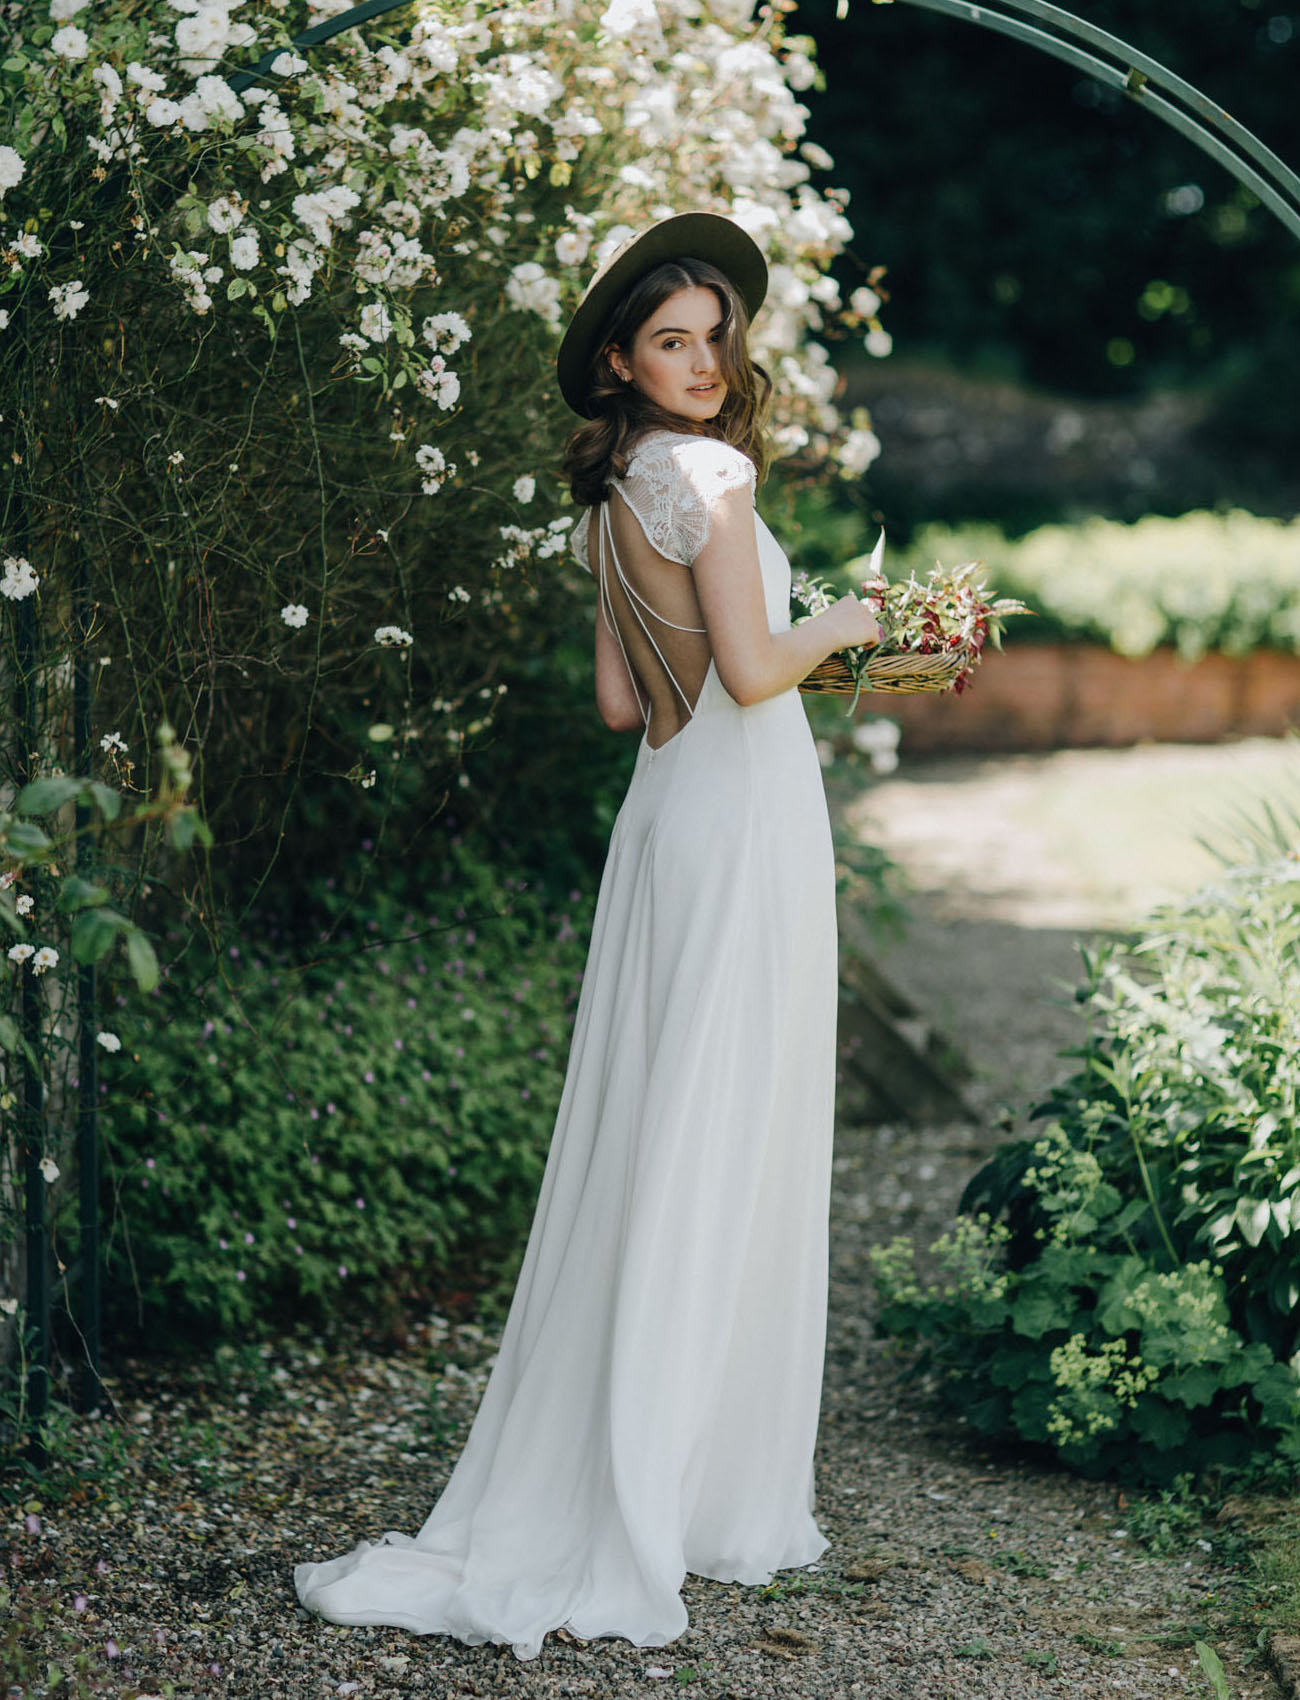 The Secret Garden Wedding Inspiration